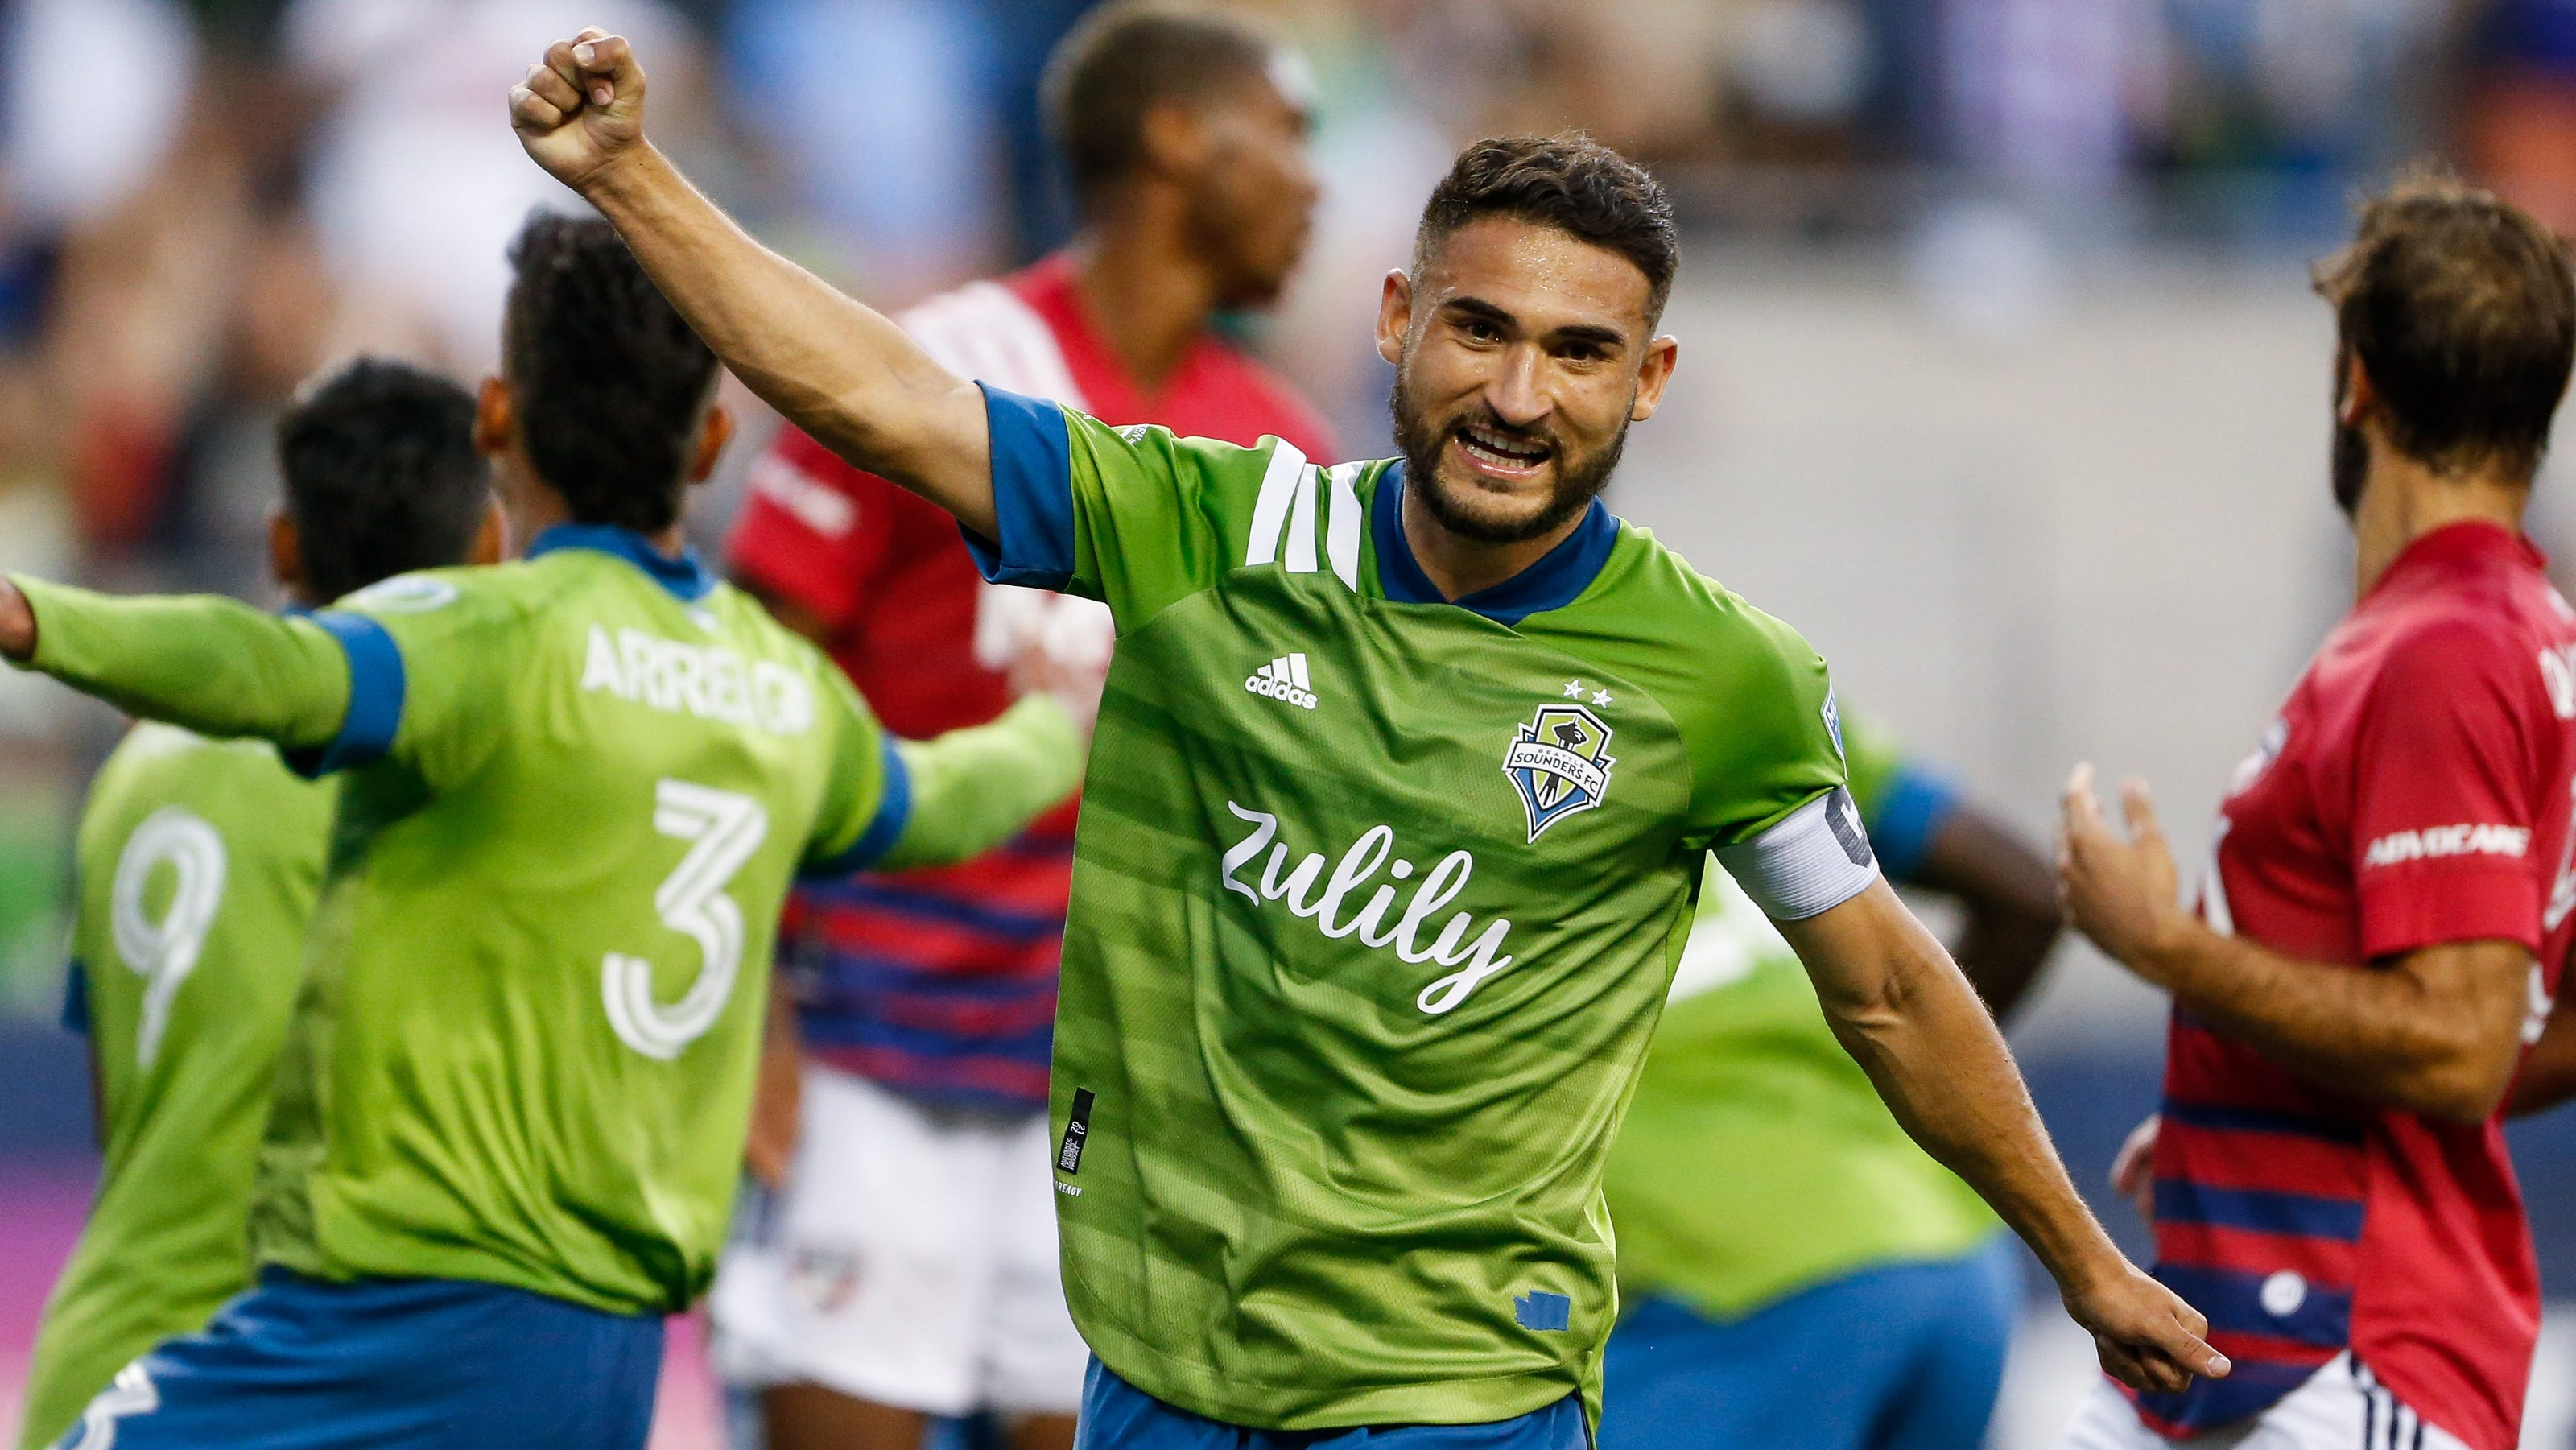 MLS vs. Liga MX All-Star game: Rosters, game time, how to watch on TV and live stream